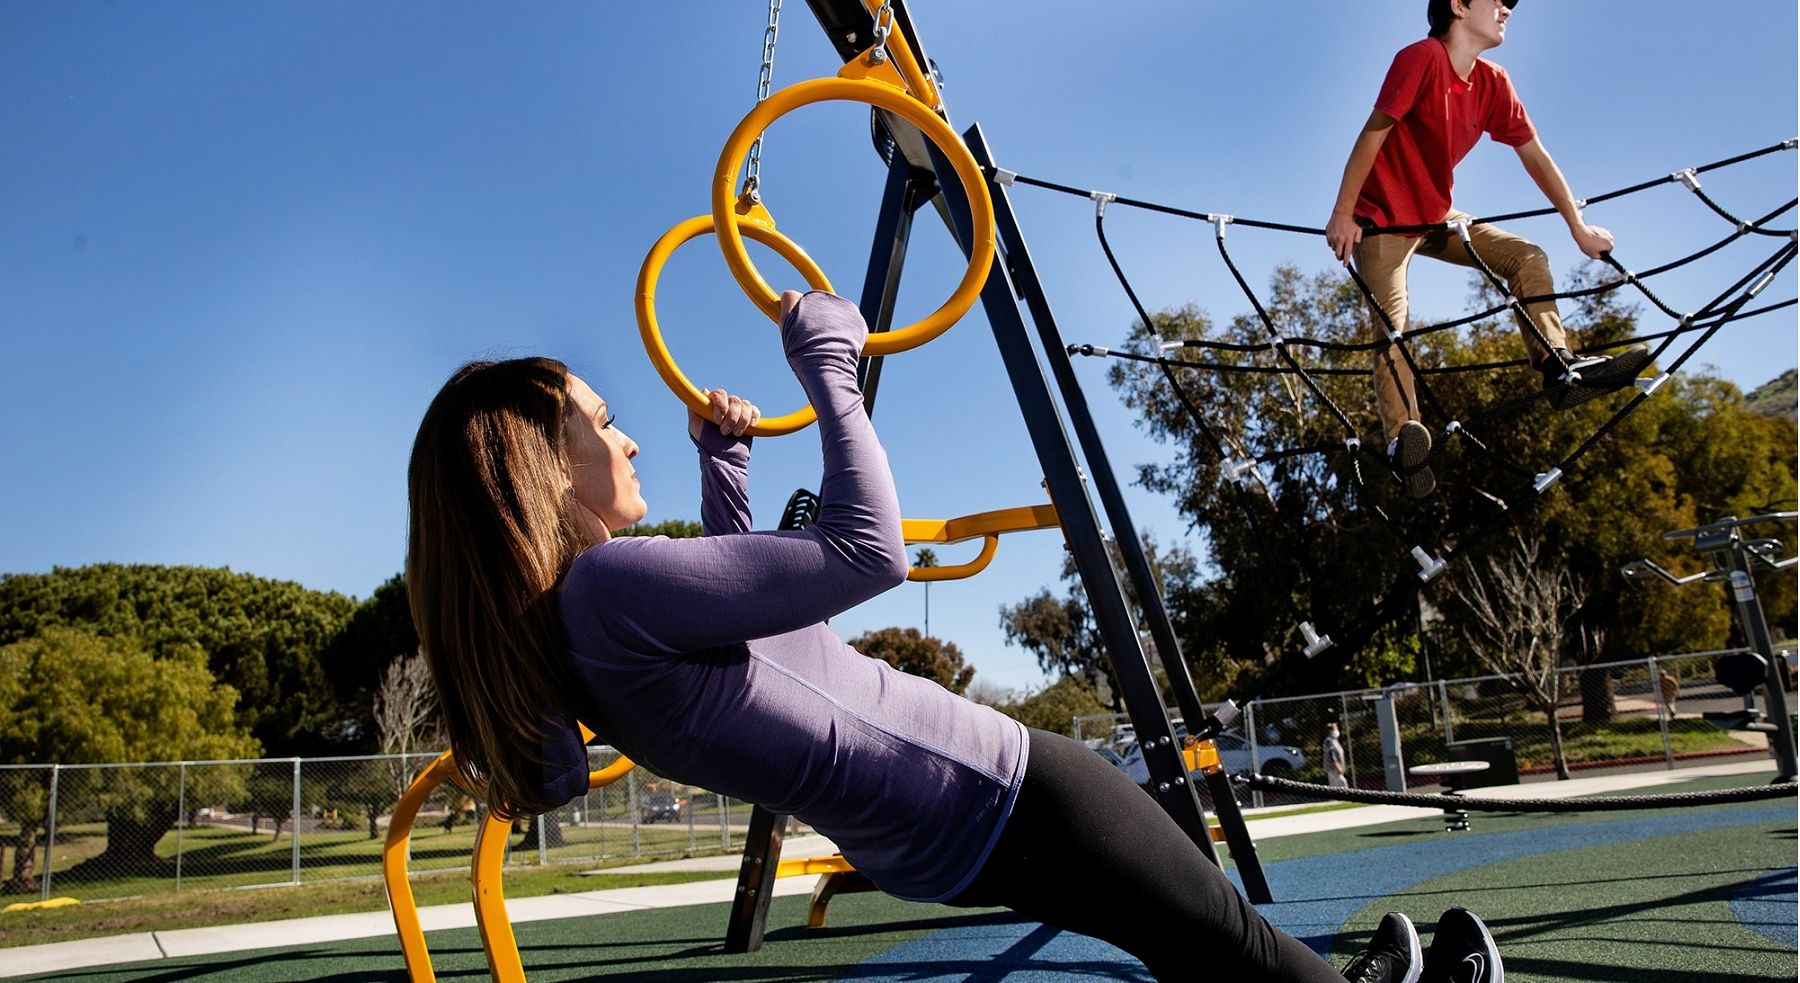 Outdoor Fitness and Workout Equipment by GameTime